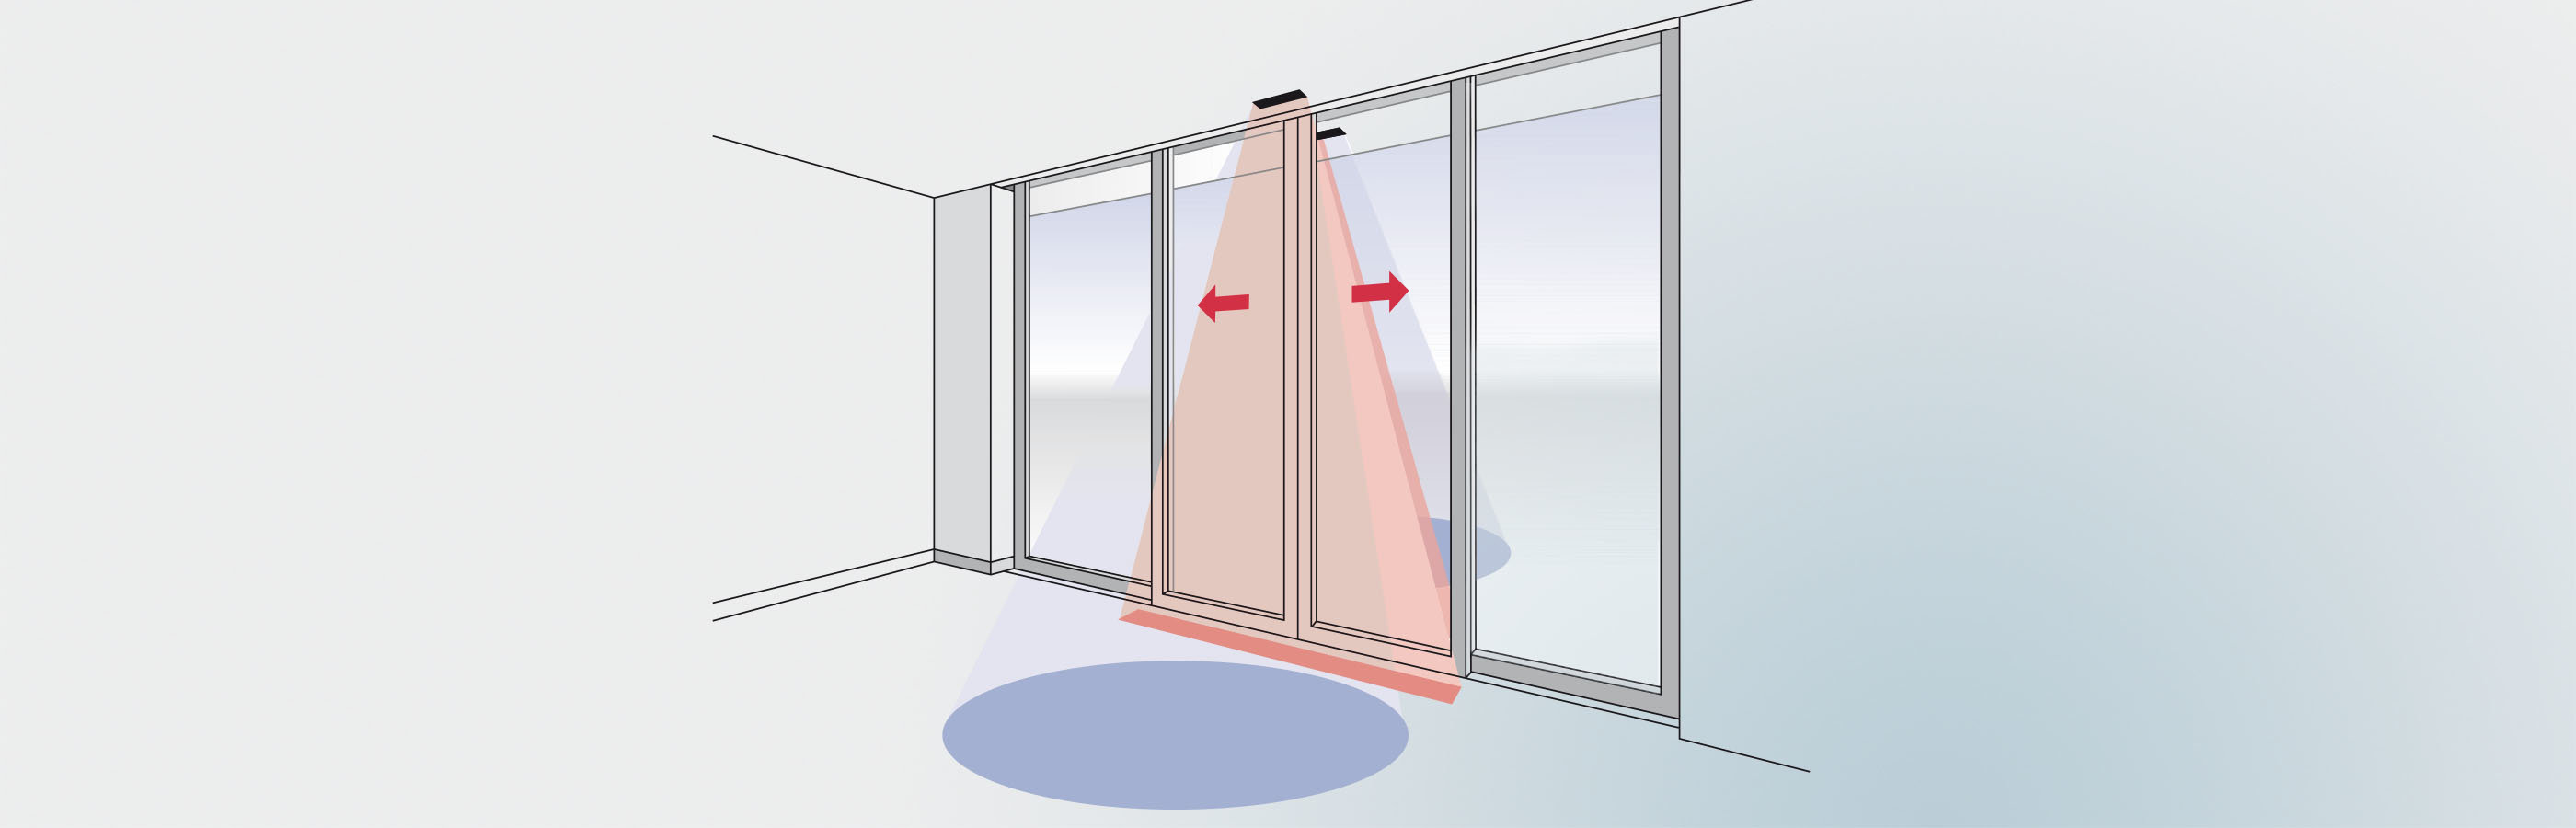 PrimeTec activates and secures a sliding door